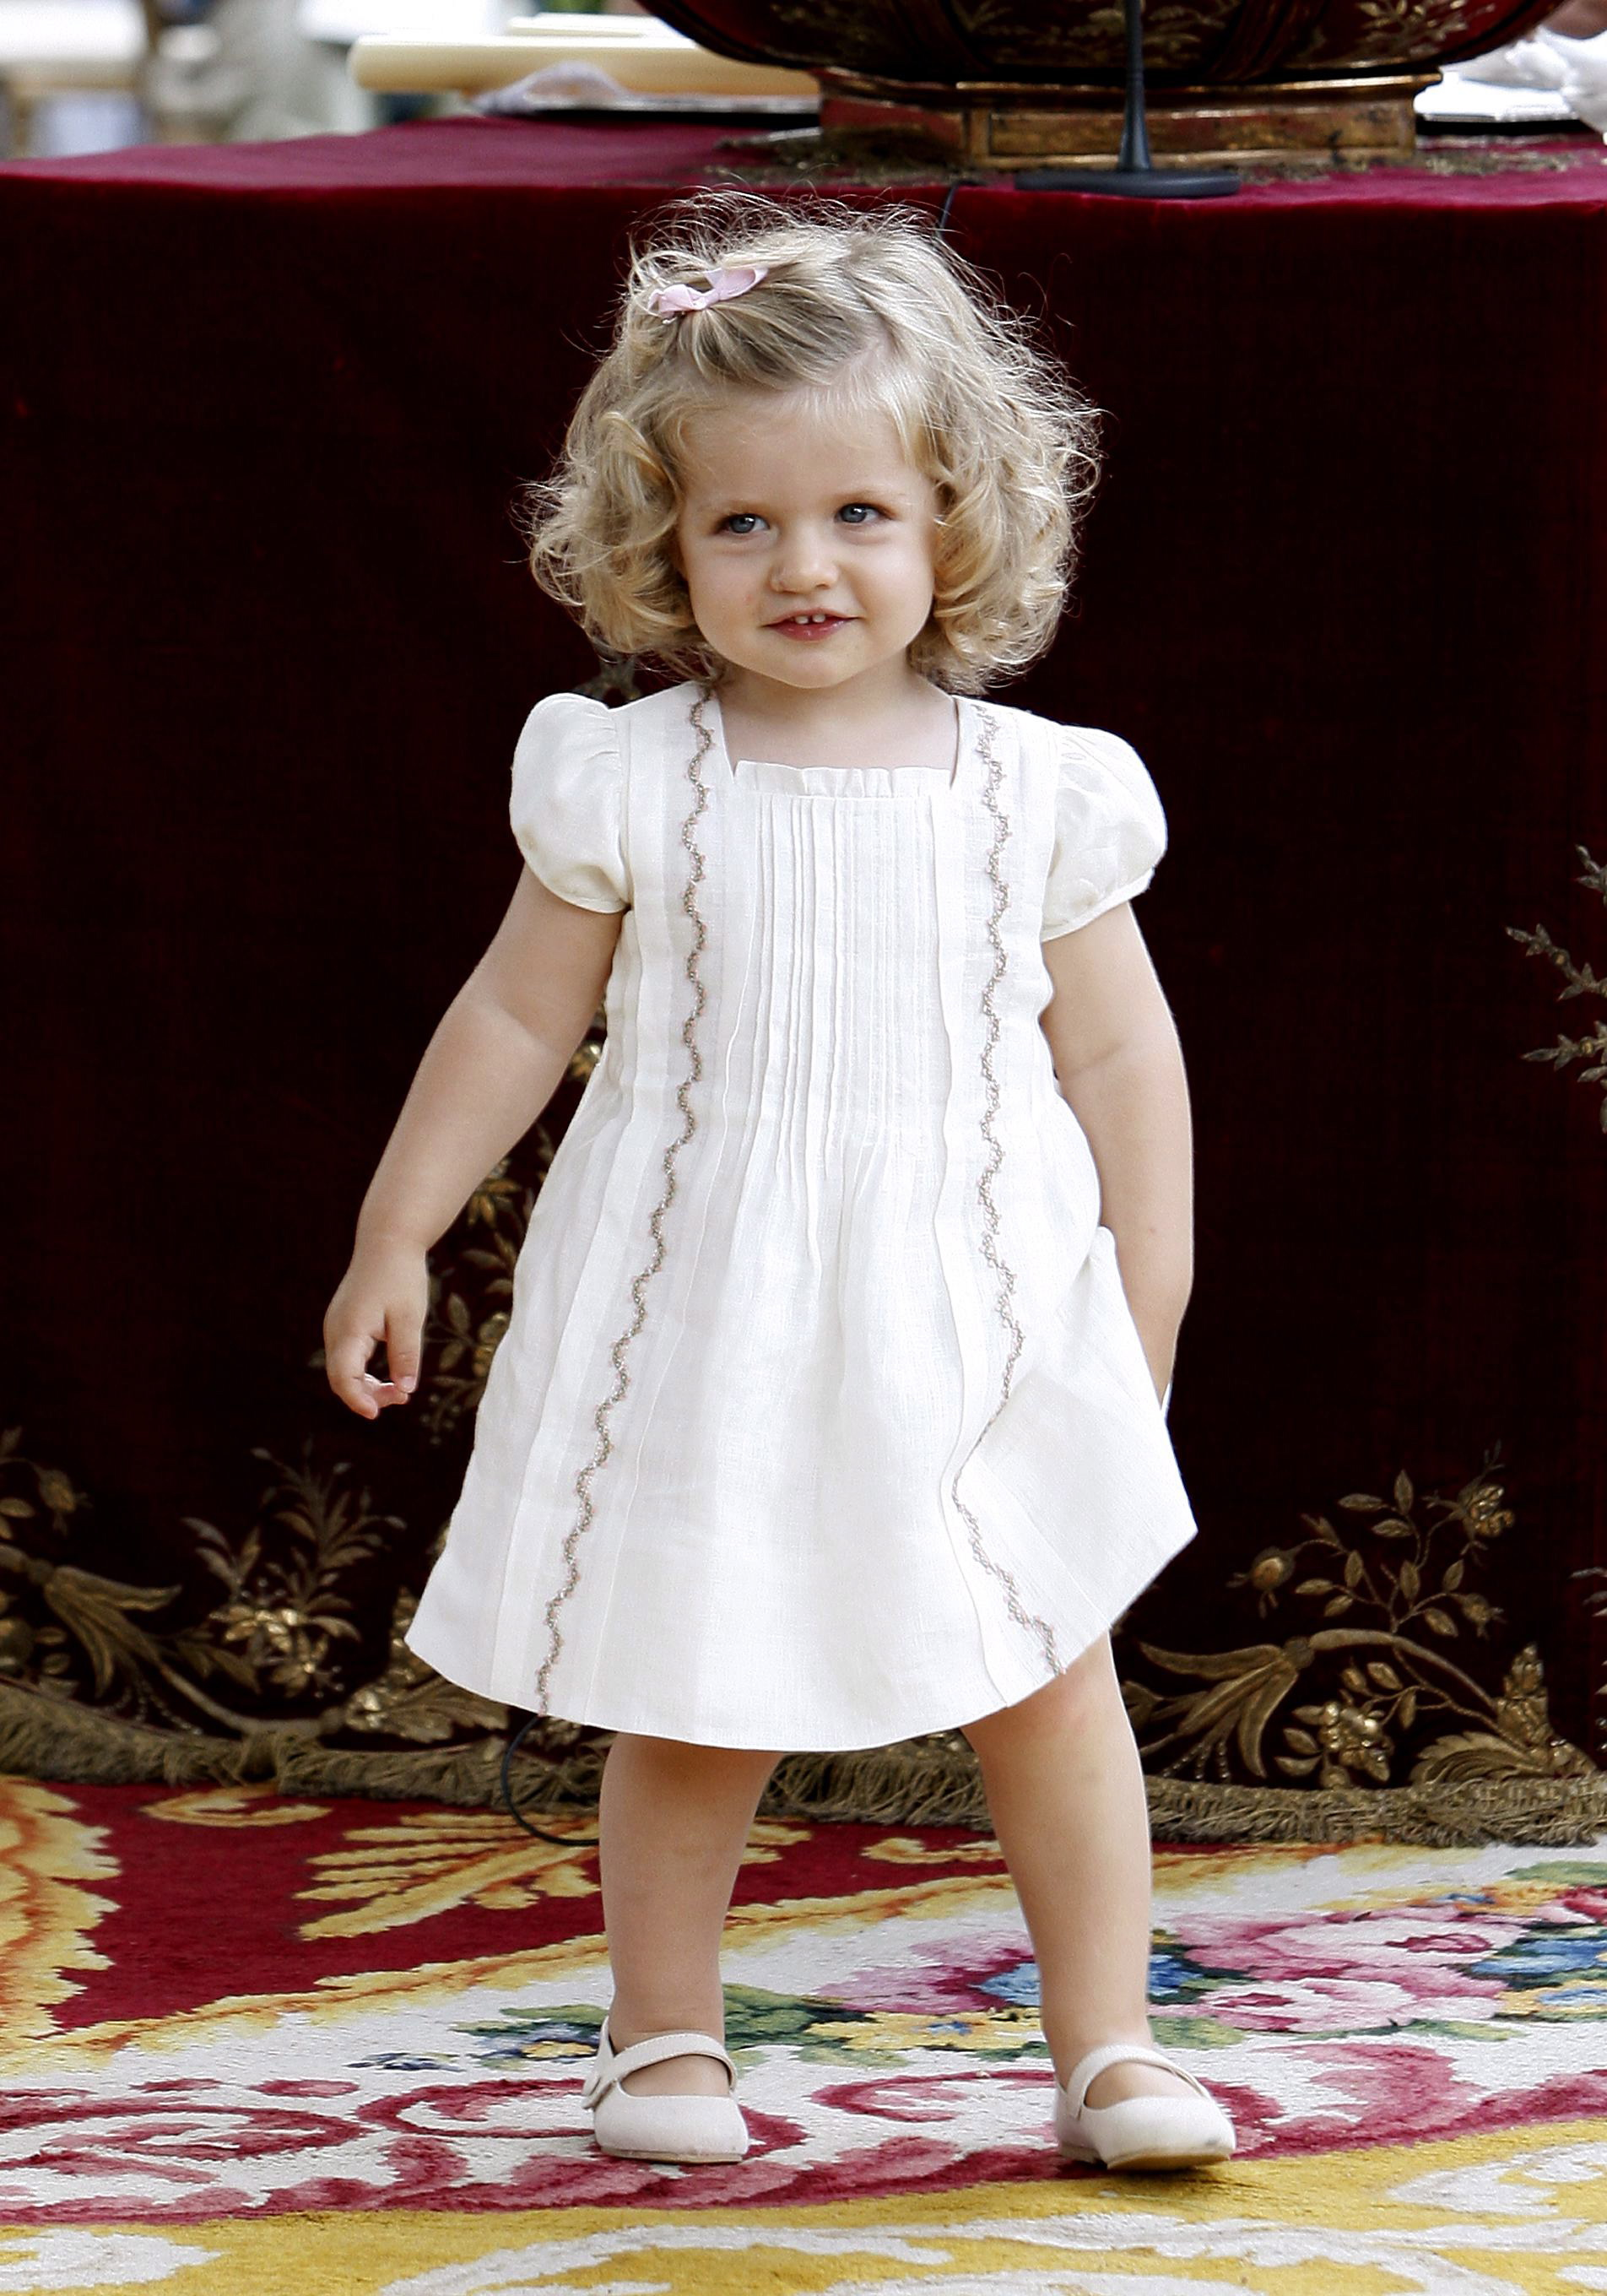 Infanta Leonor of Spain photo 85 of 106 pics, wallpaper